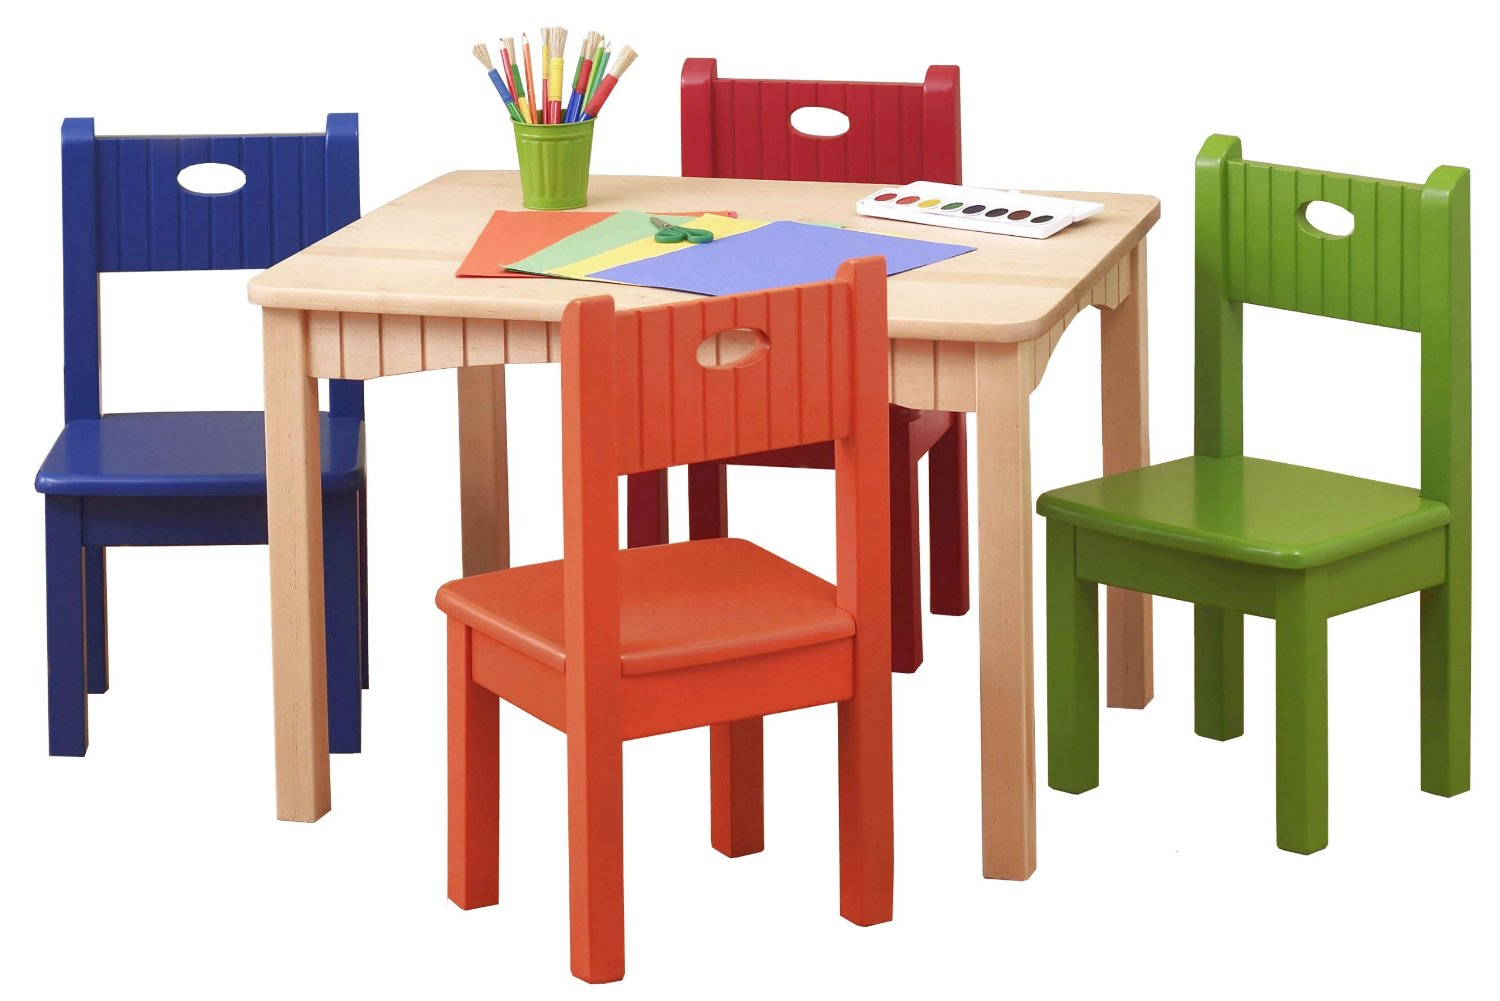 Kids Wooden Table And Chairs Wooden Table And Chairs For Kids Homesfeed